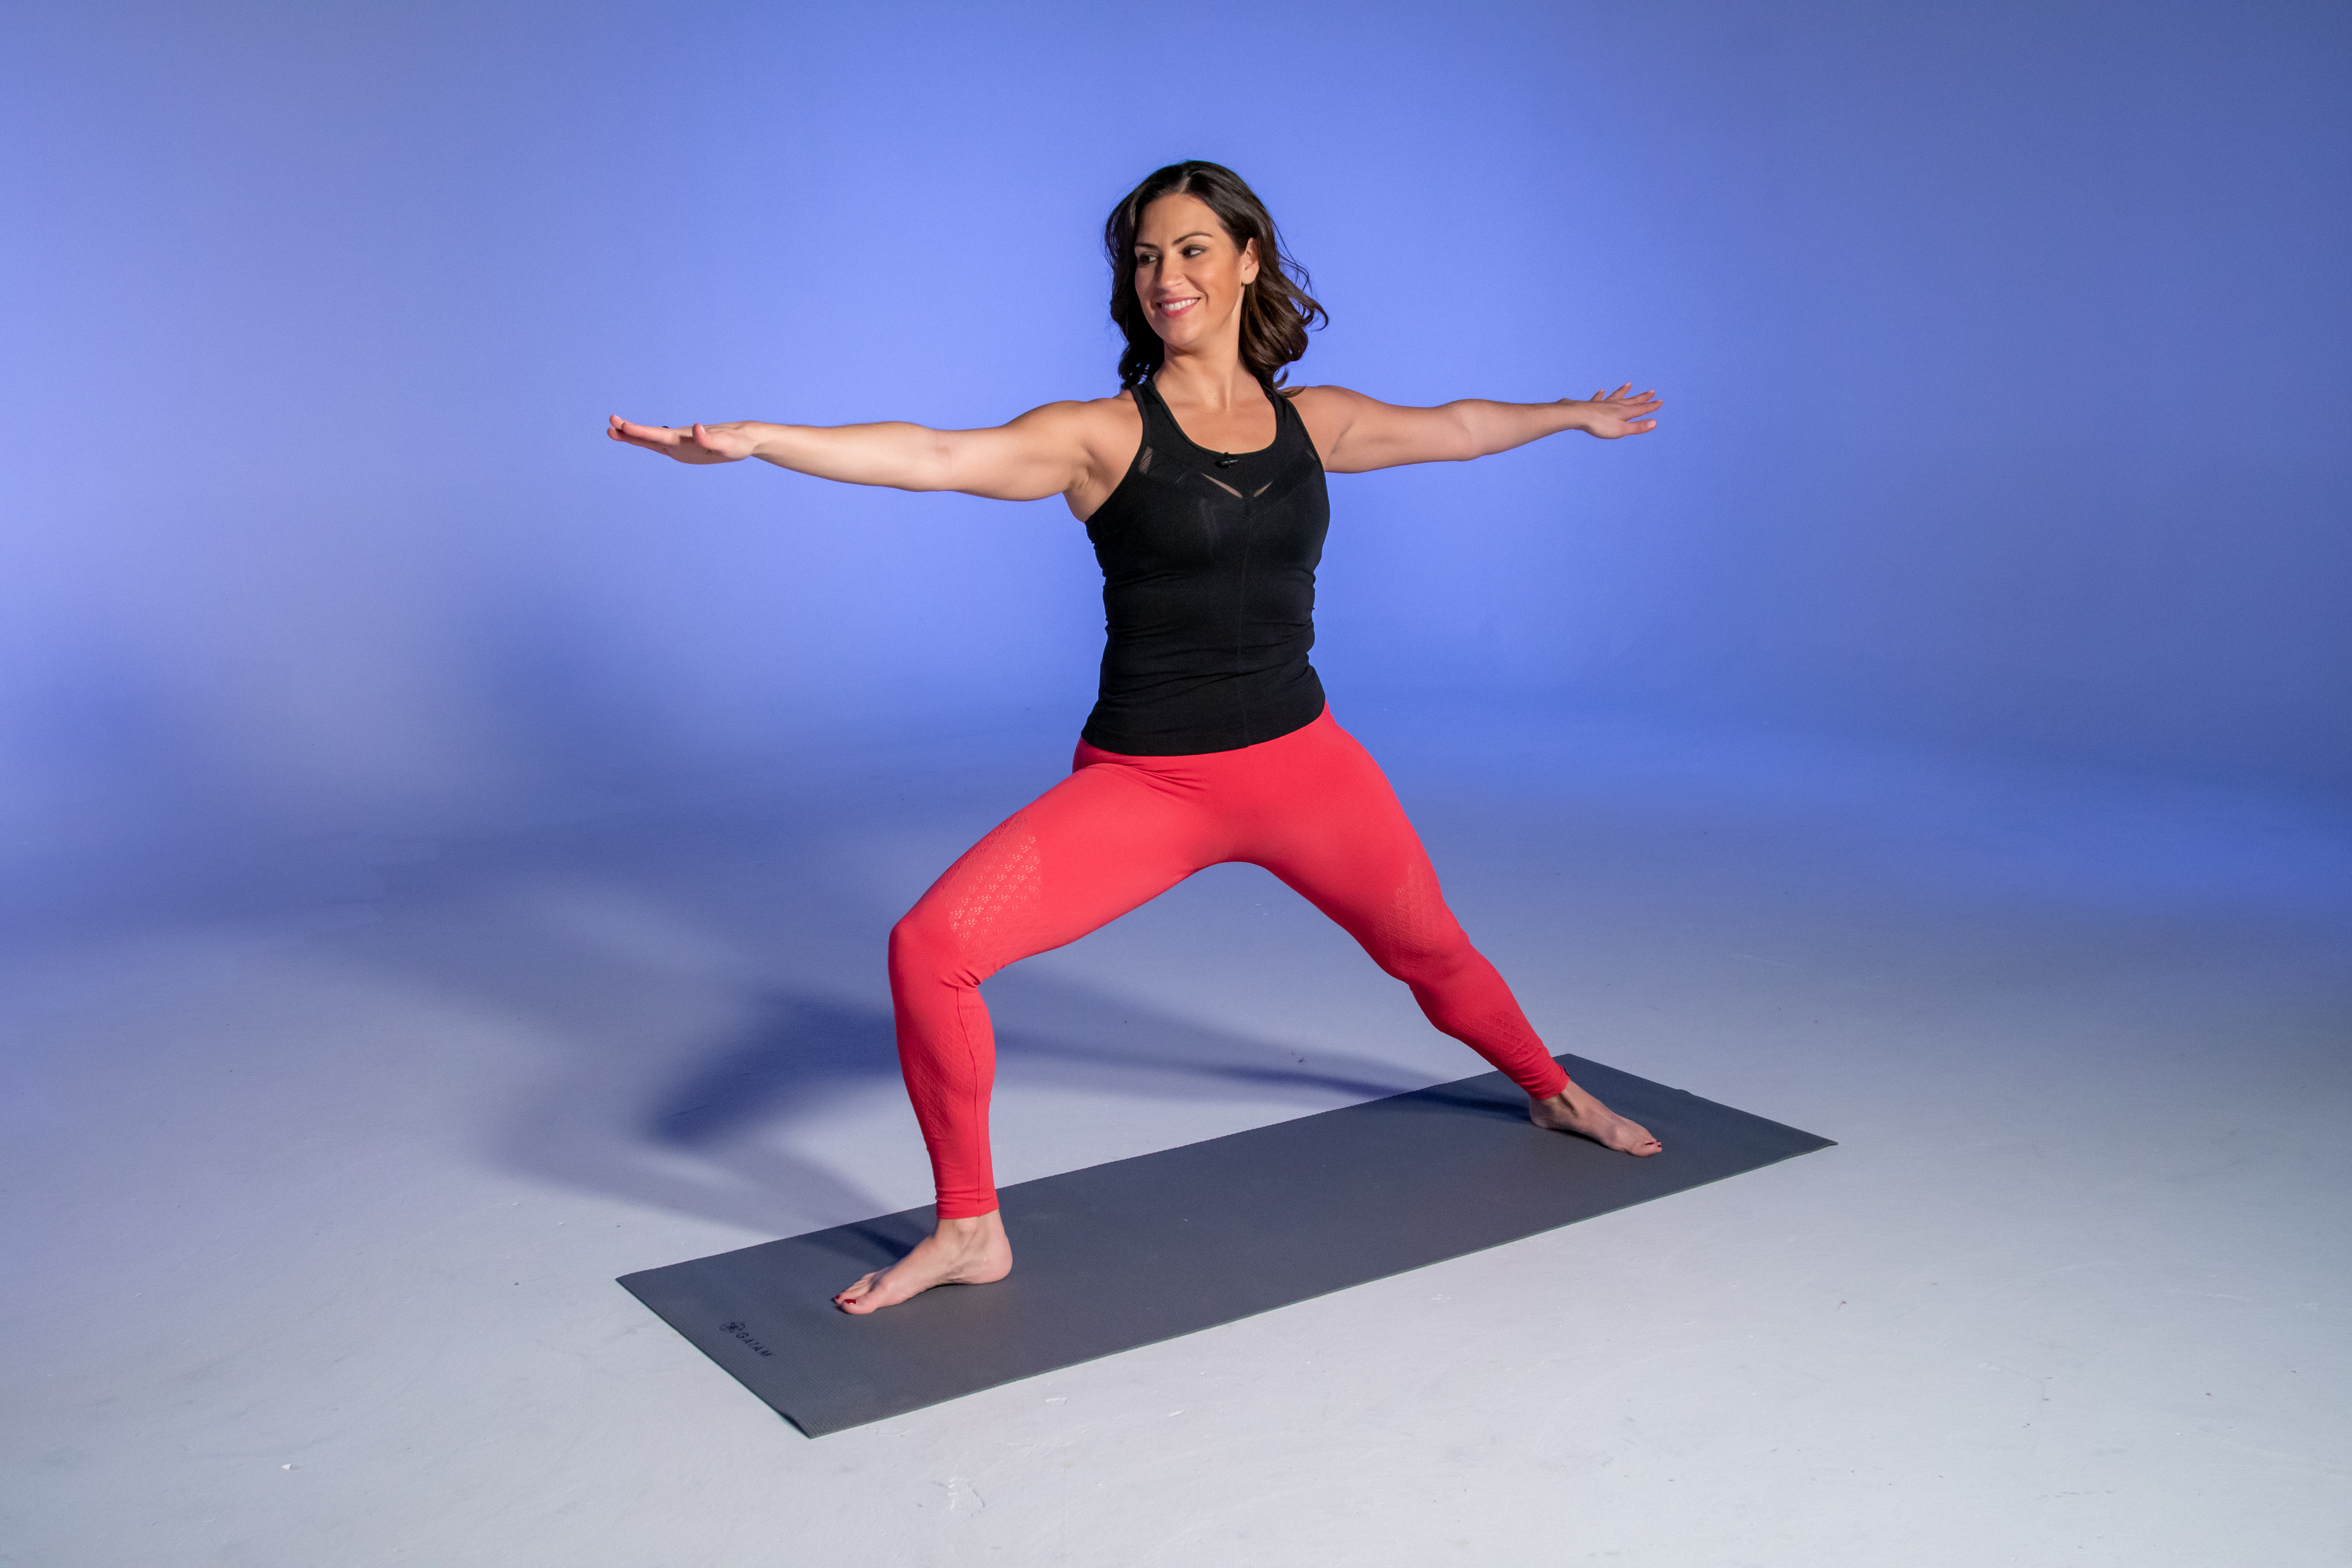 Health and fitness expert Stephanie Mansour in yoga pose Warrior II, the first step in working towards Bird of Paradise.